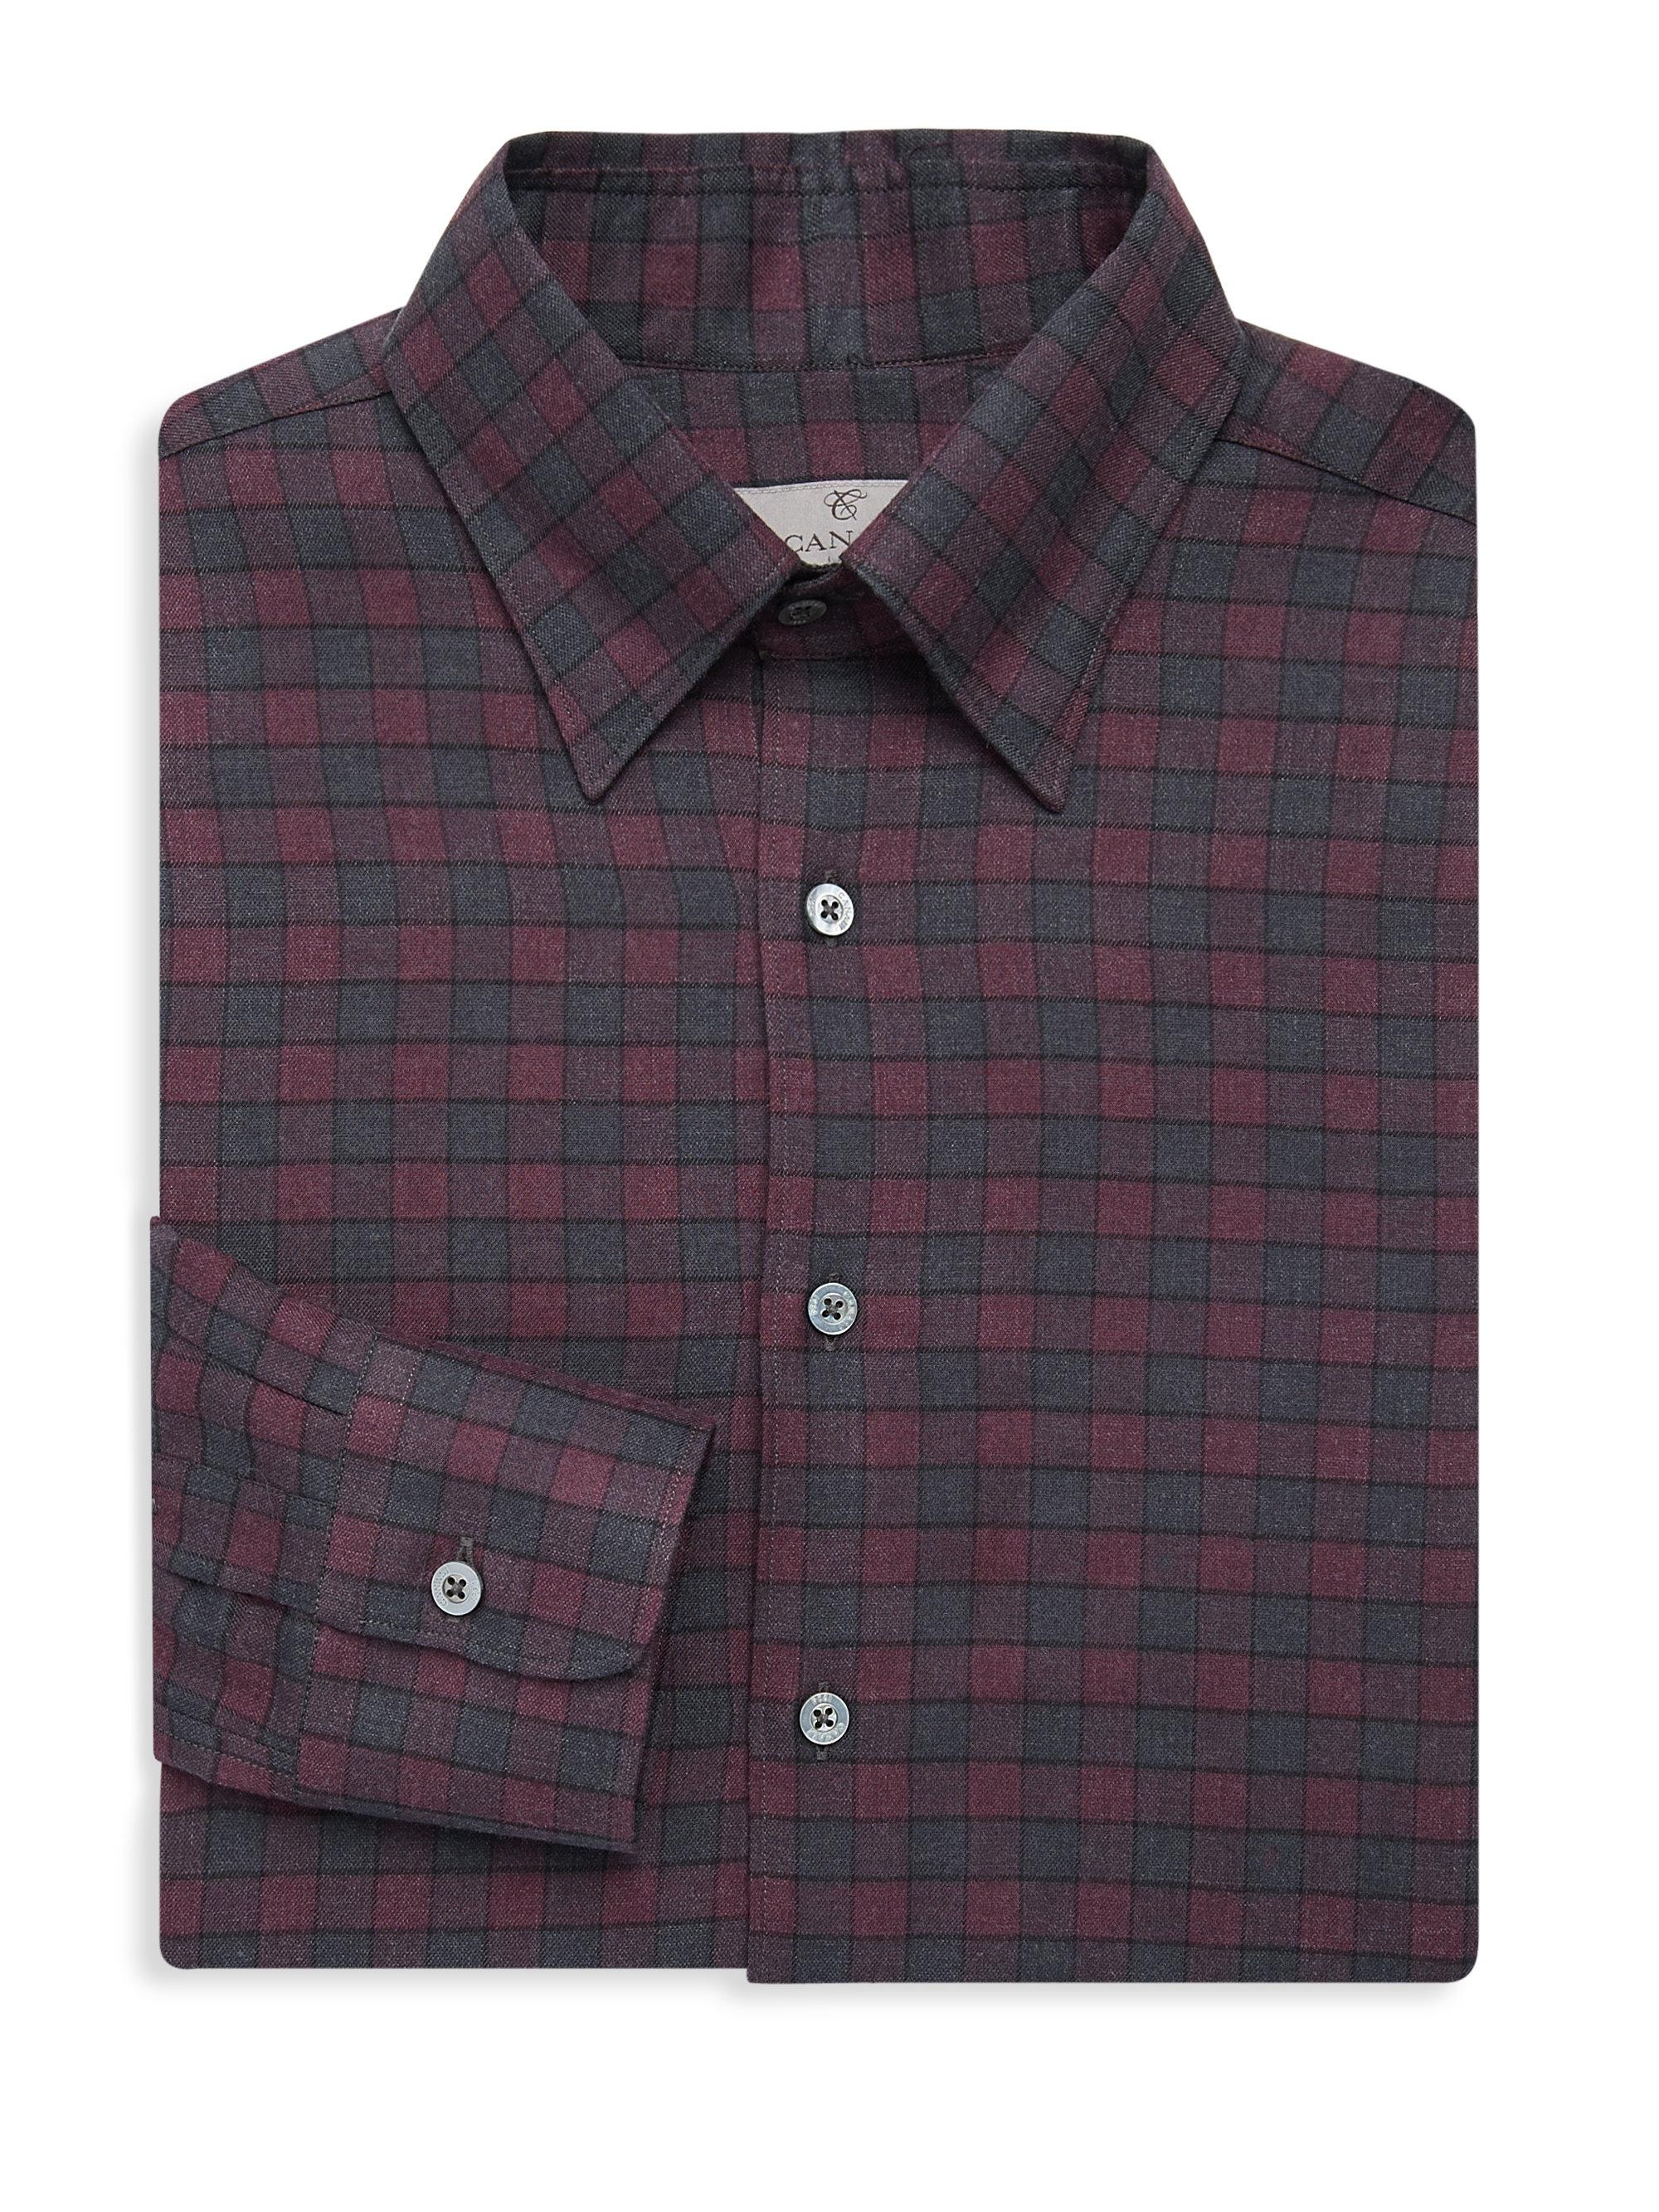 Lyst Canali Plaid Cotton Dress Shirt In Purple For Men